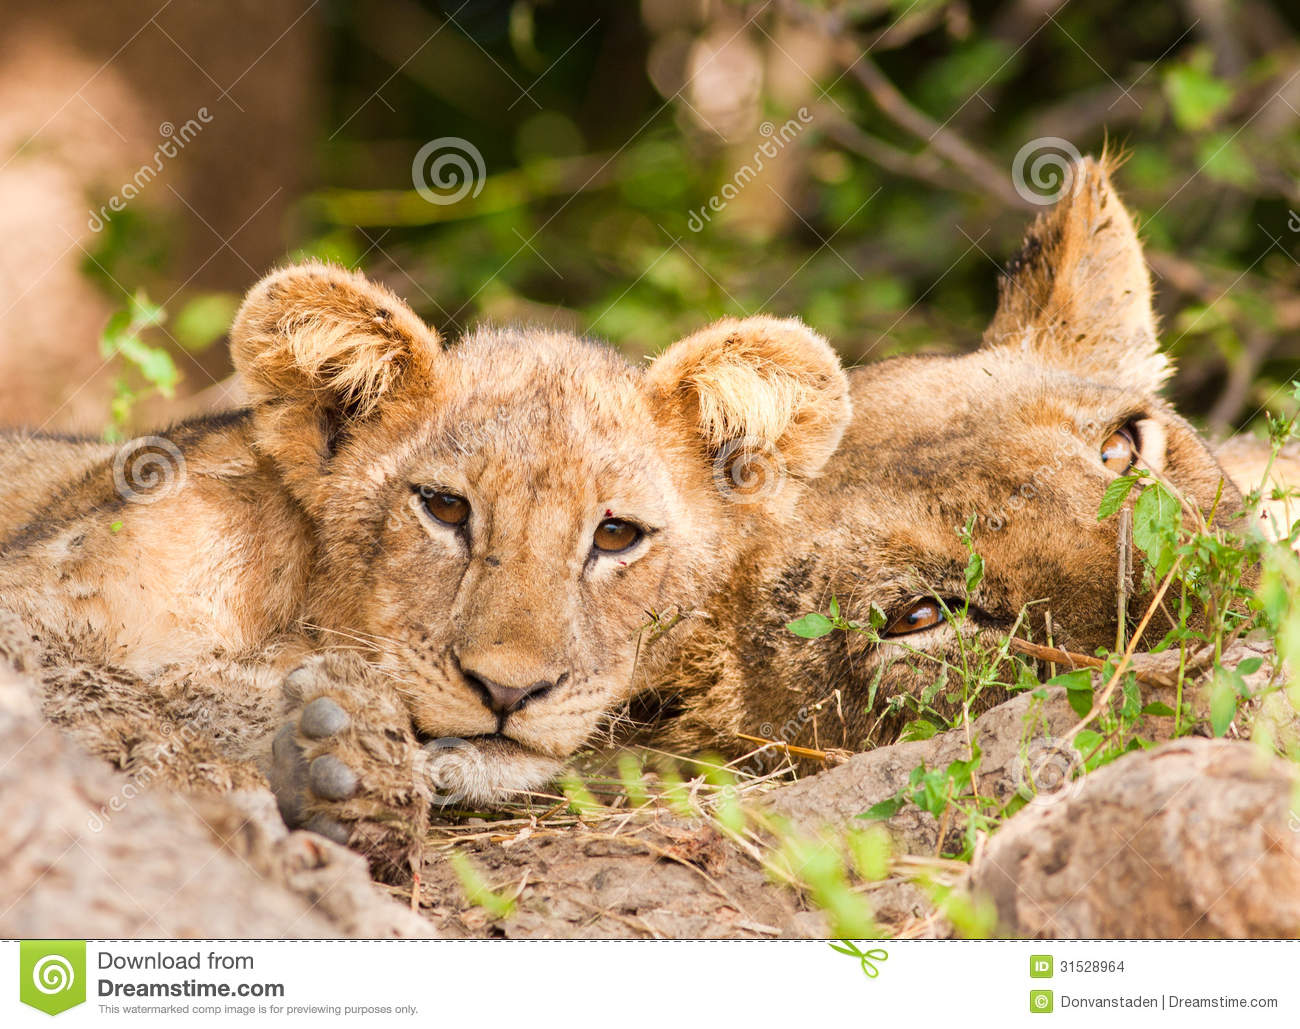 Pride of lions with cute lion cub